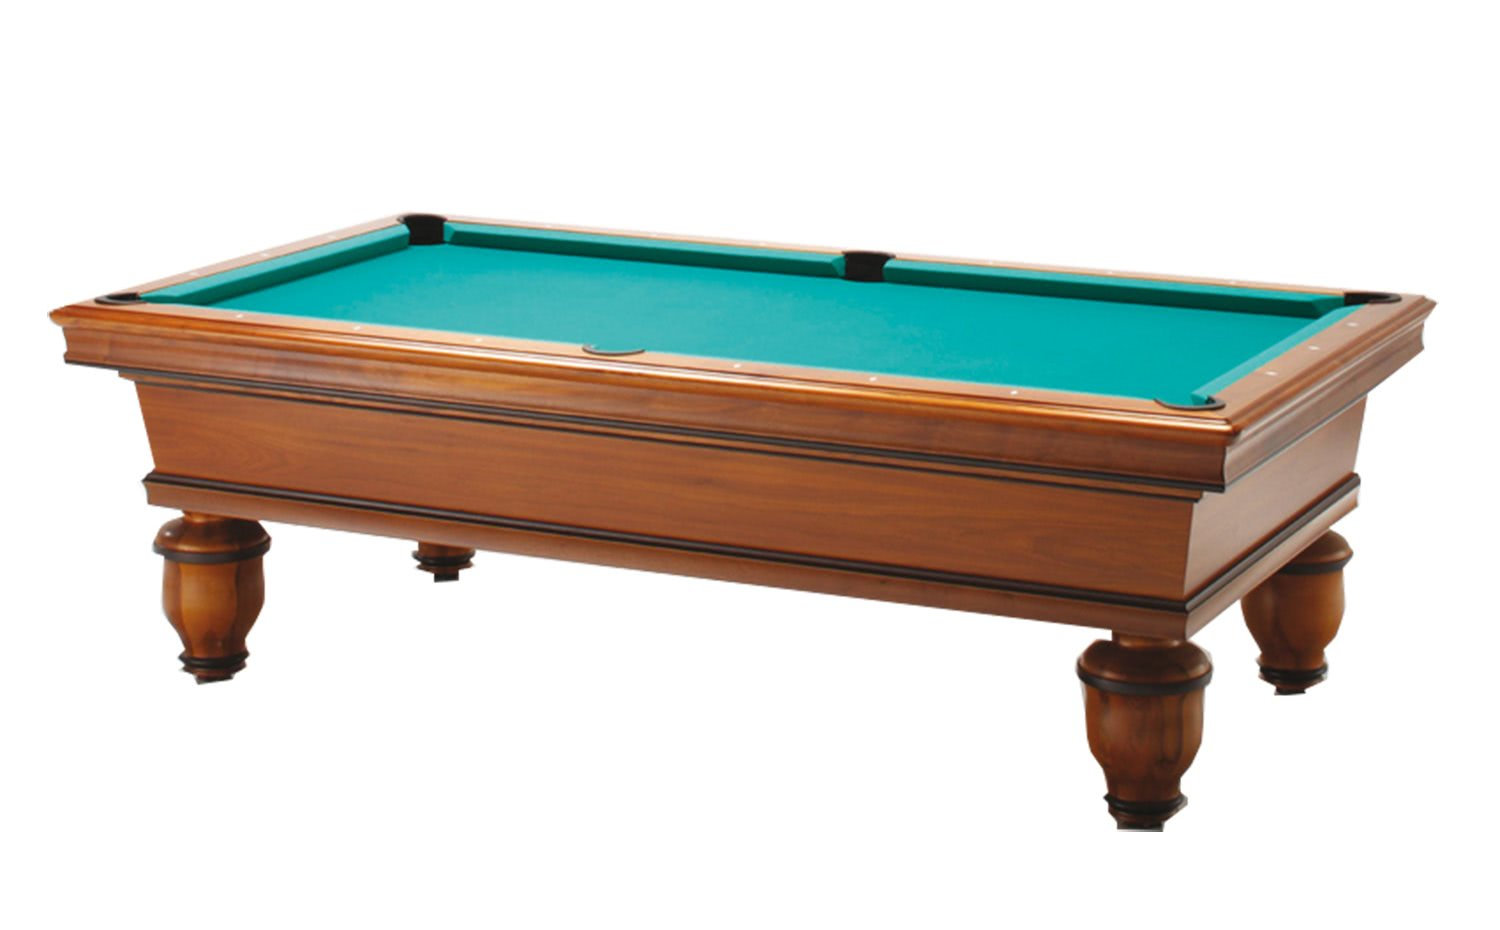 billard toulet renaissance pool table 6 ft 7 ft 8 ft. Black Bedroom Furniture Sets. Home Design Ideas